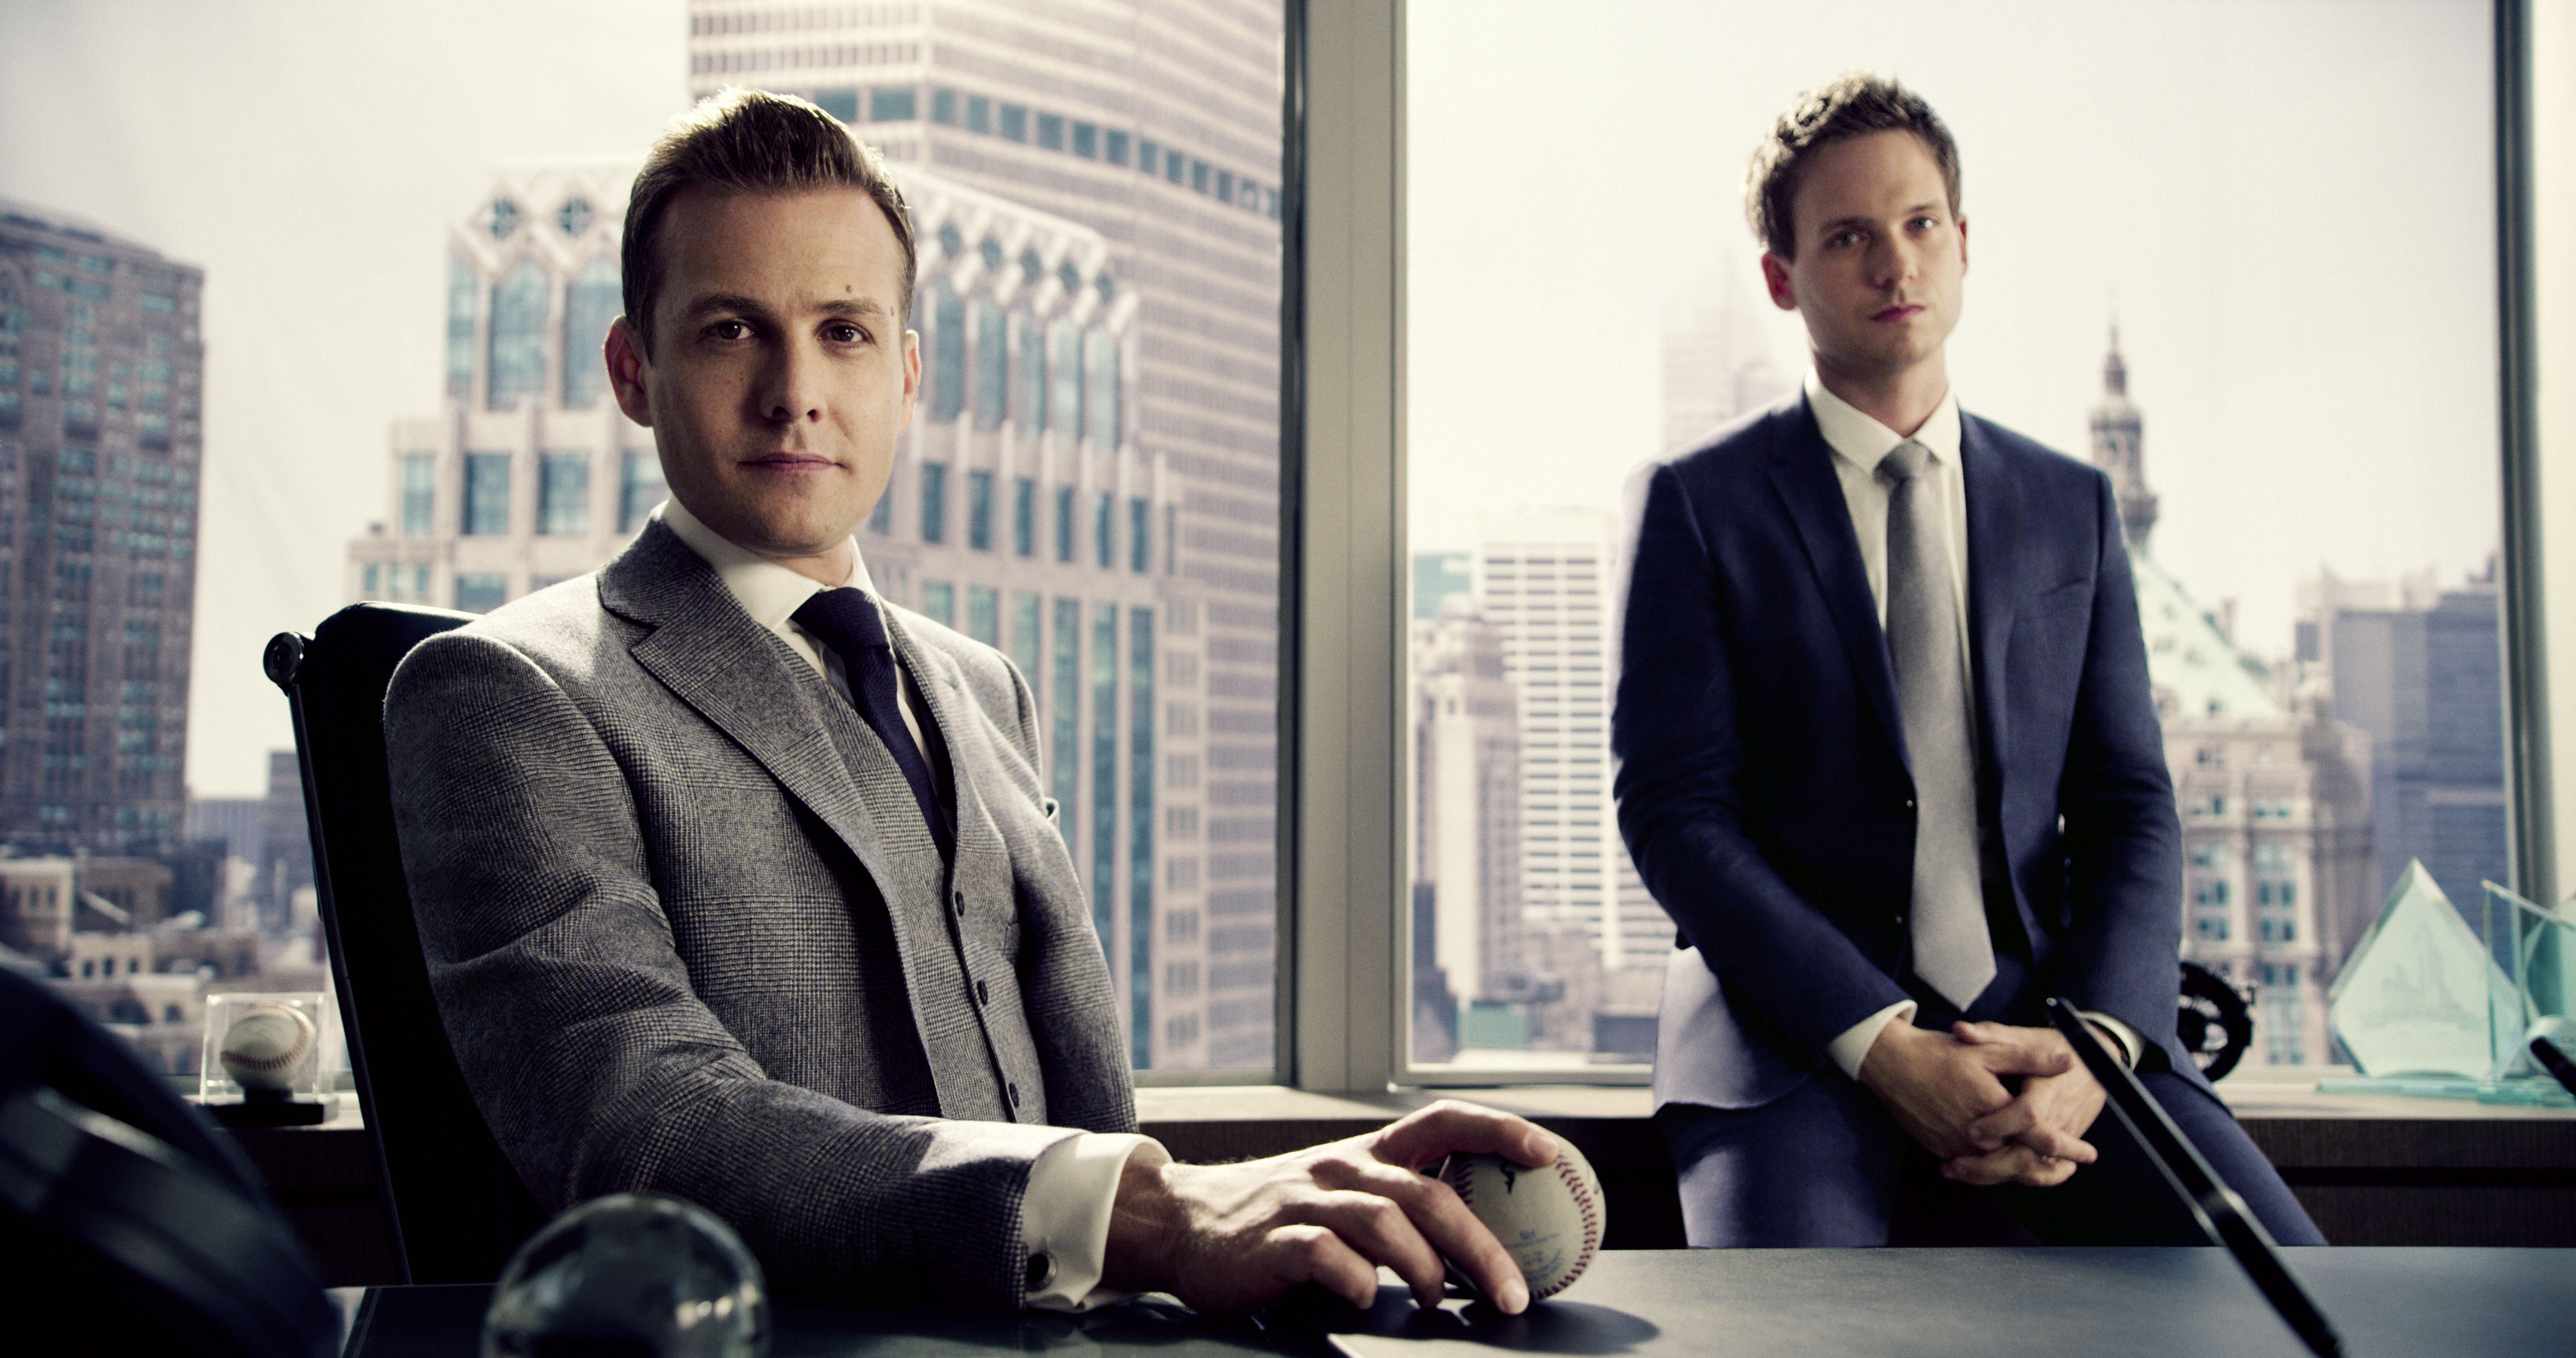 suits office. Suits Office. They Office I